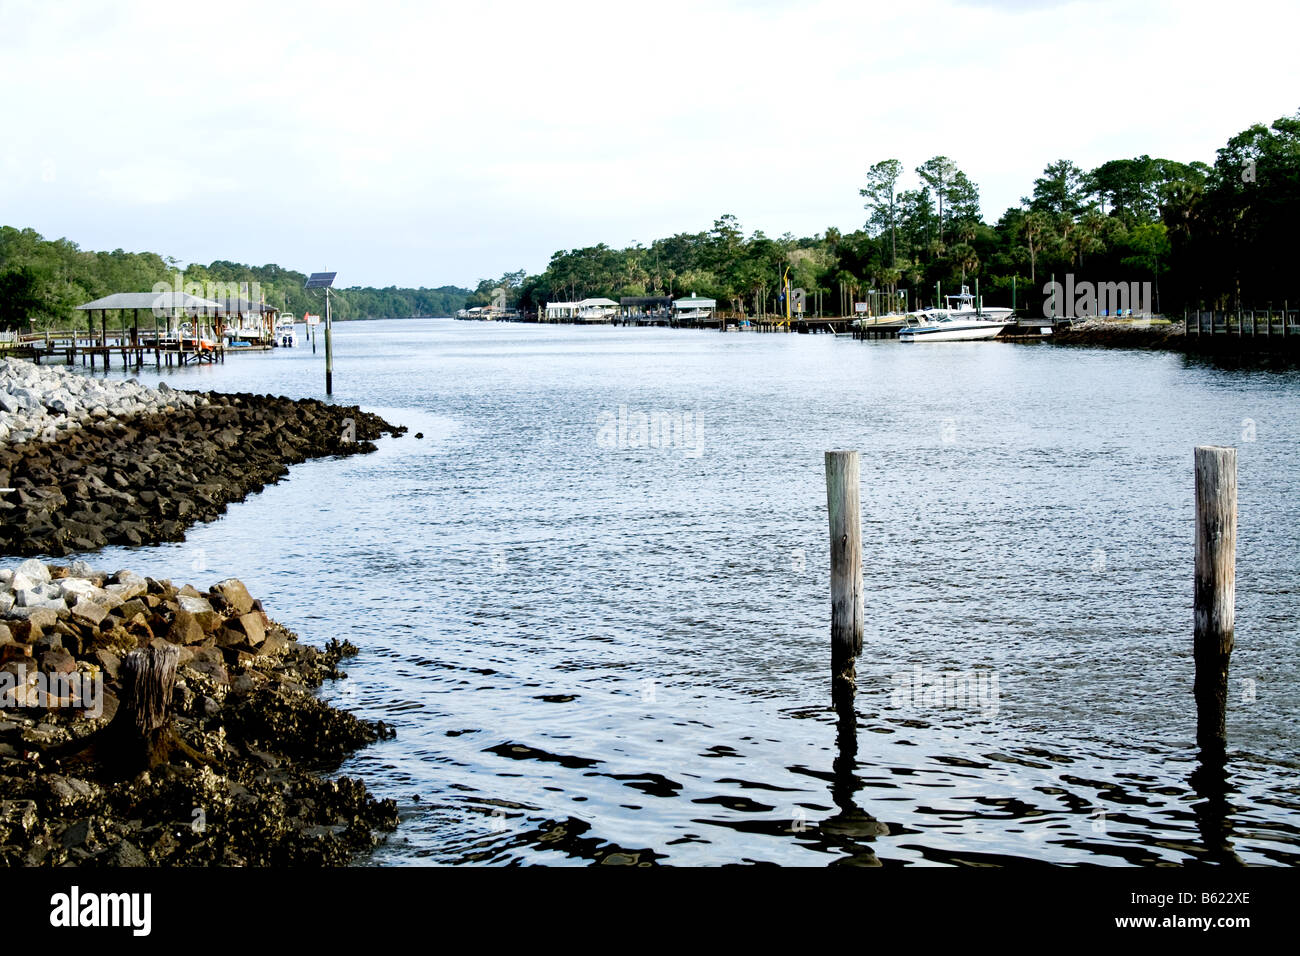 Two wooden posts on the rocky shore of the Intracoastal waterway in Florida - Stock Image